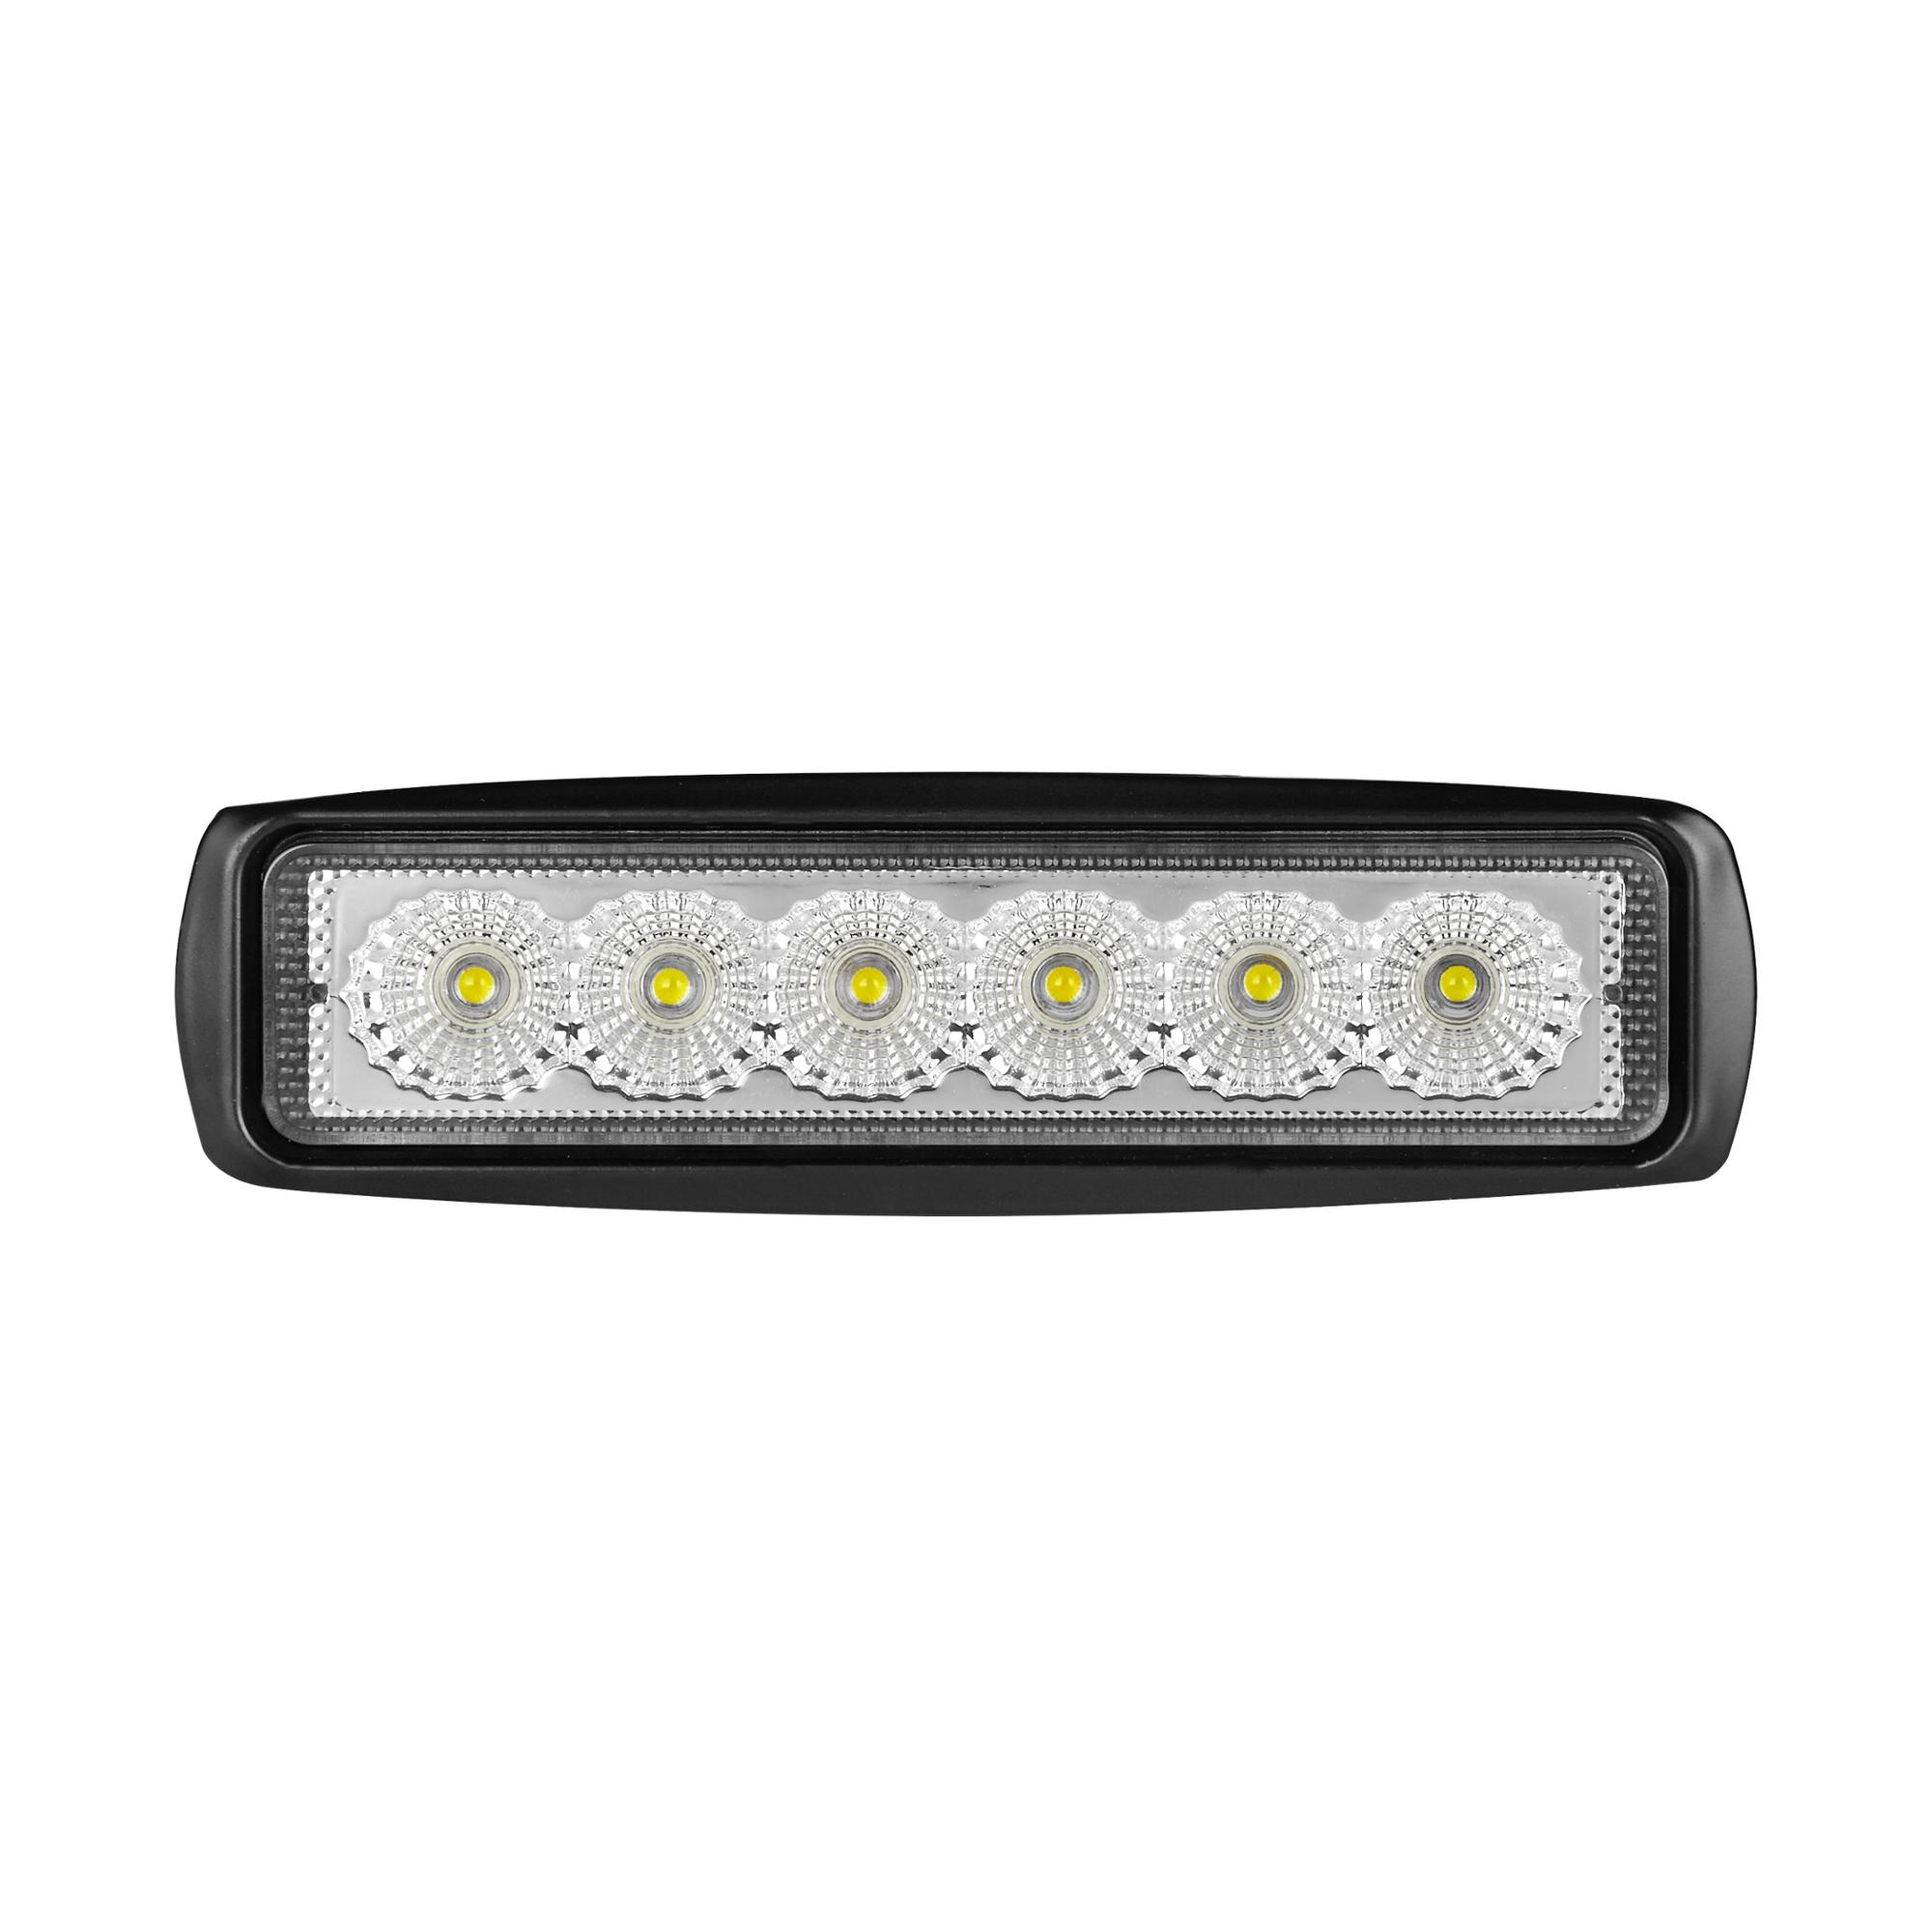 18 W Off Road 4x4 Araba led ışık Çubuğu